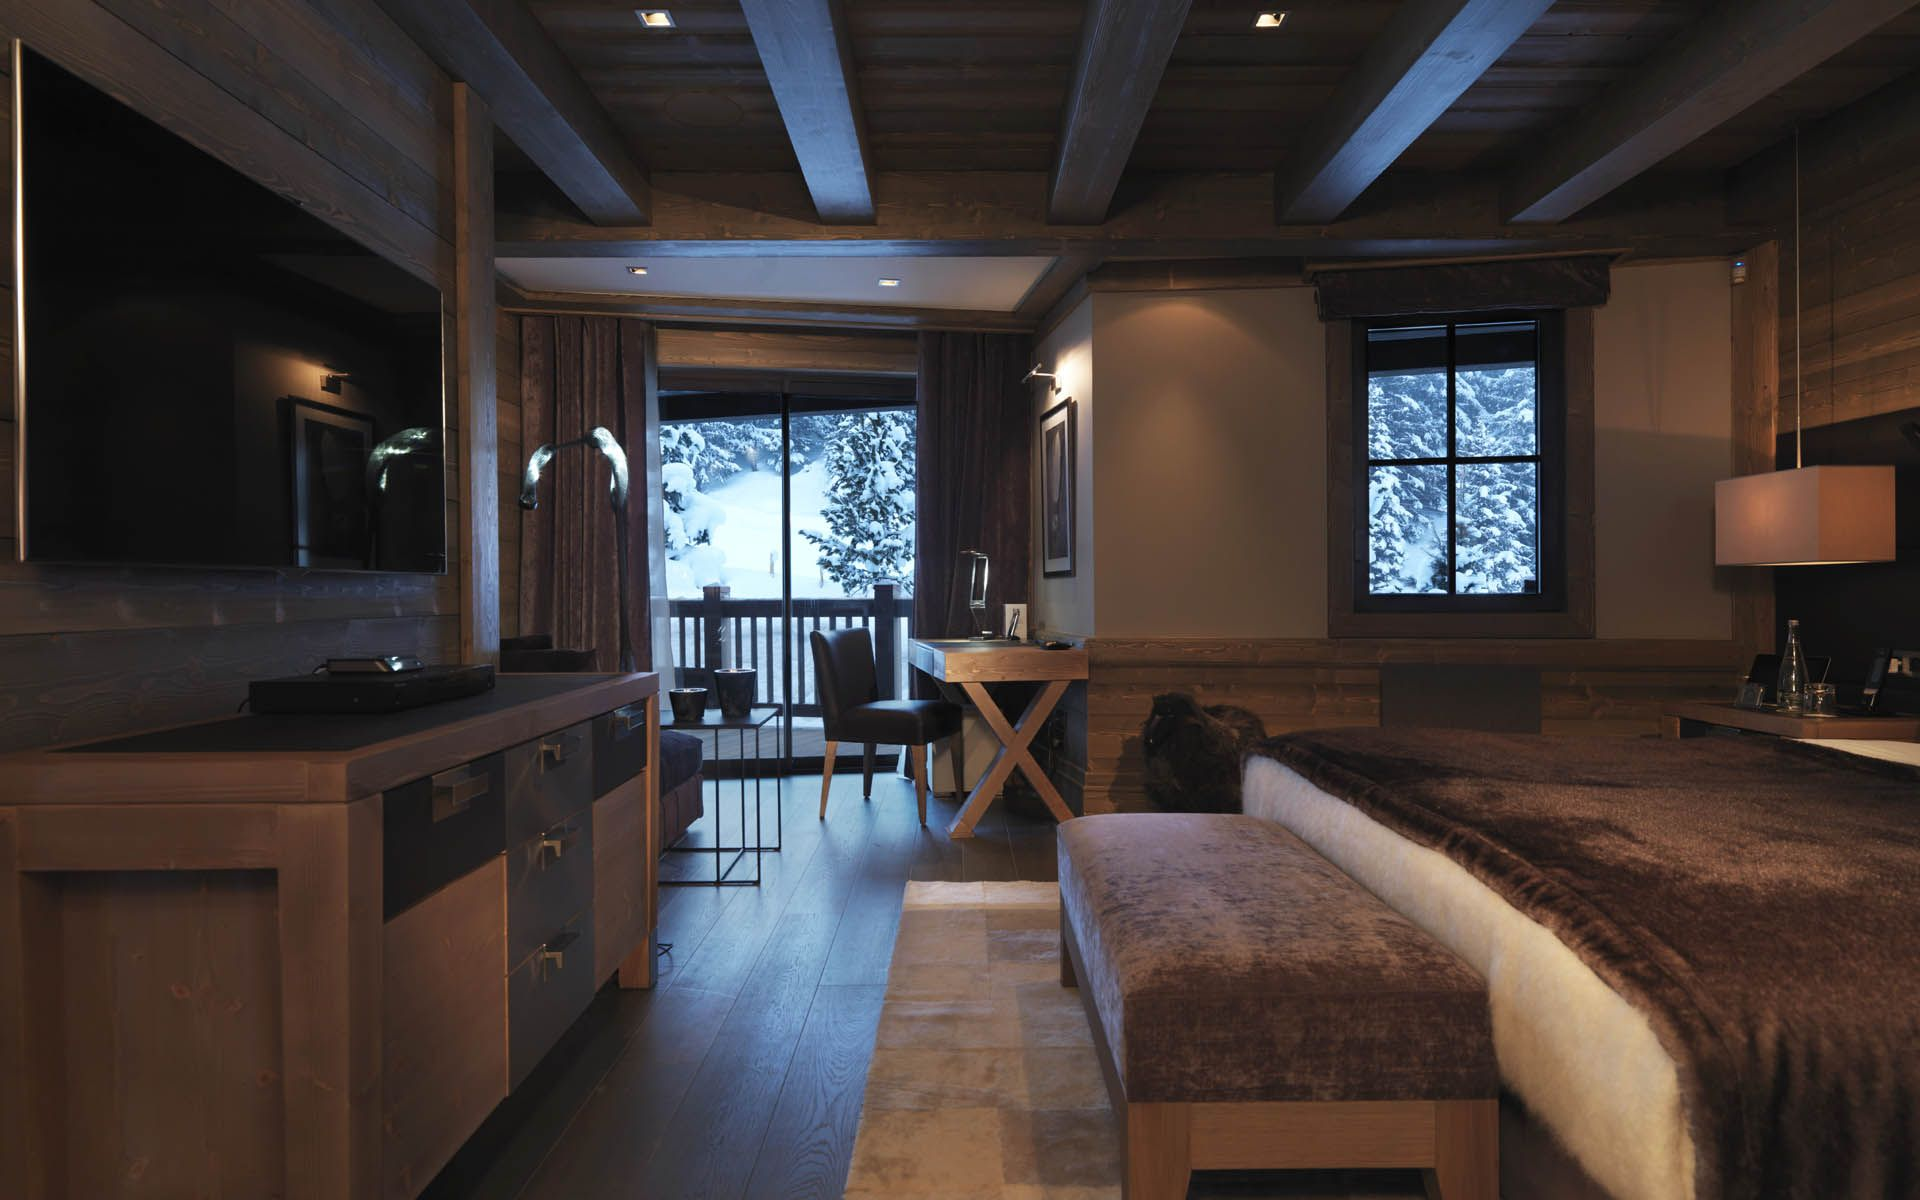 La Bergerie, Courchevel 1850 Is A State Of The Art, Super Luxury Ski Chalet  In A Superb Ski In, Ski Out Location With Its Dedicated Spa Facilities And  A ...